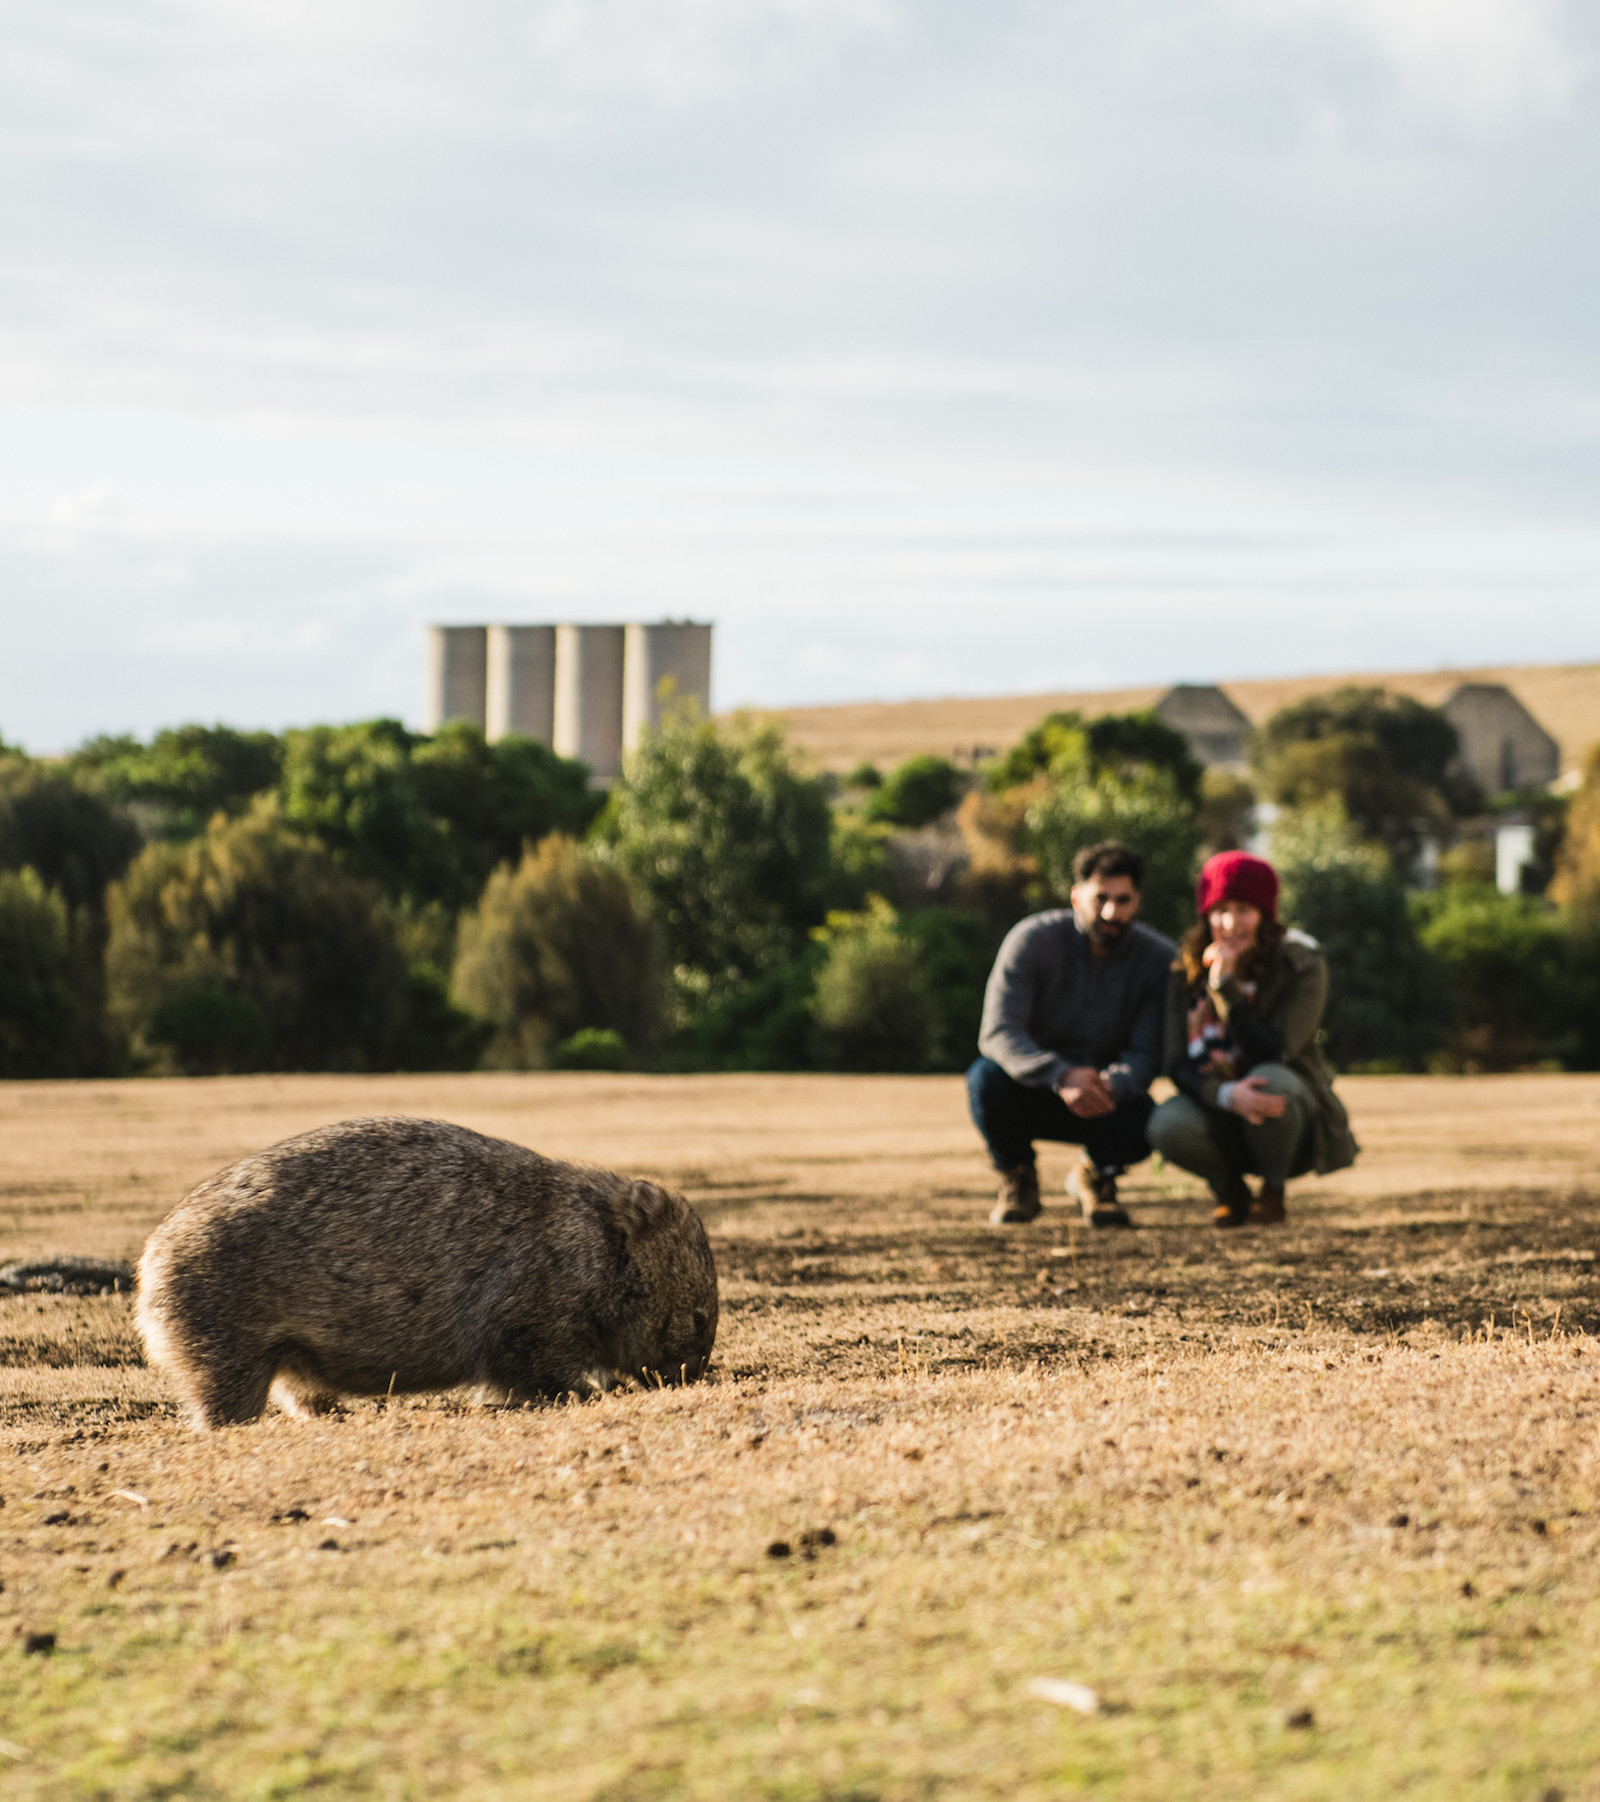 A couple gaze at a wild wombat from a distance on Maria Island.